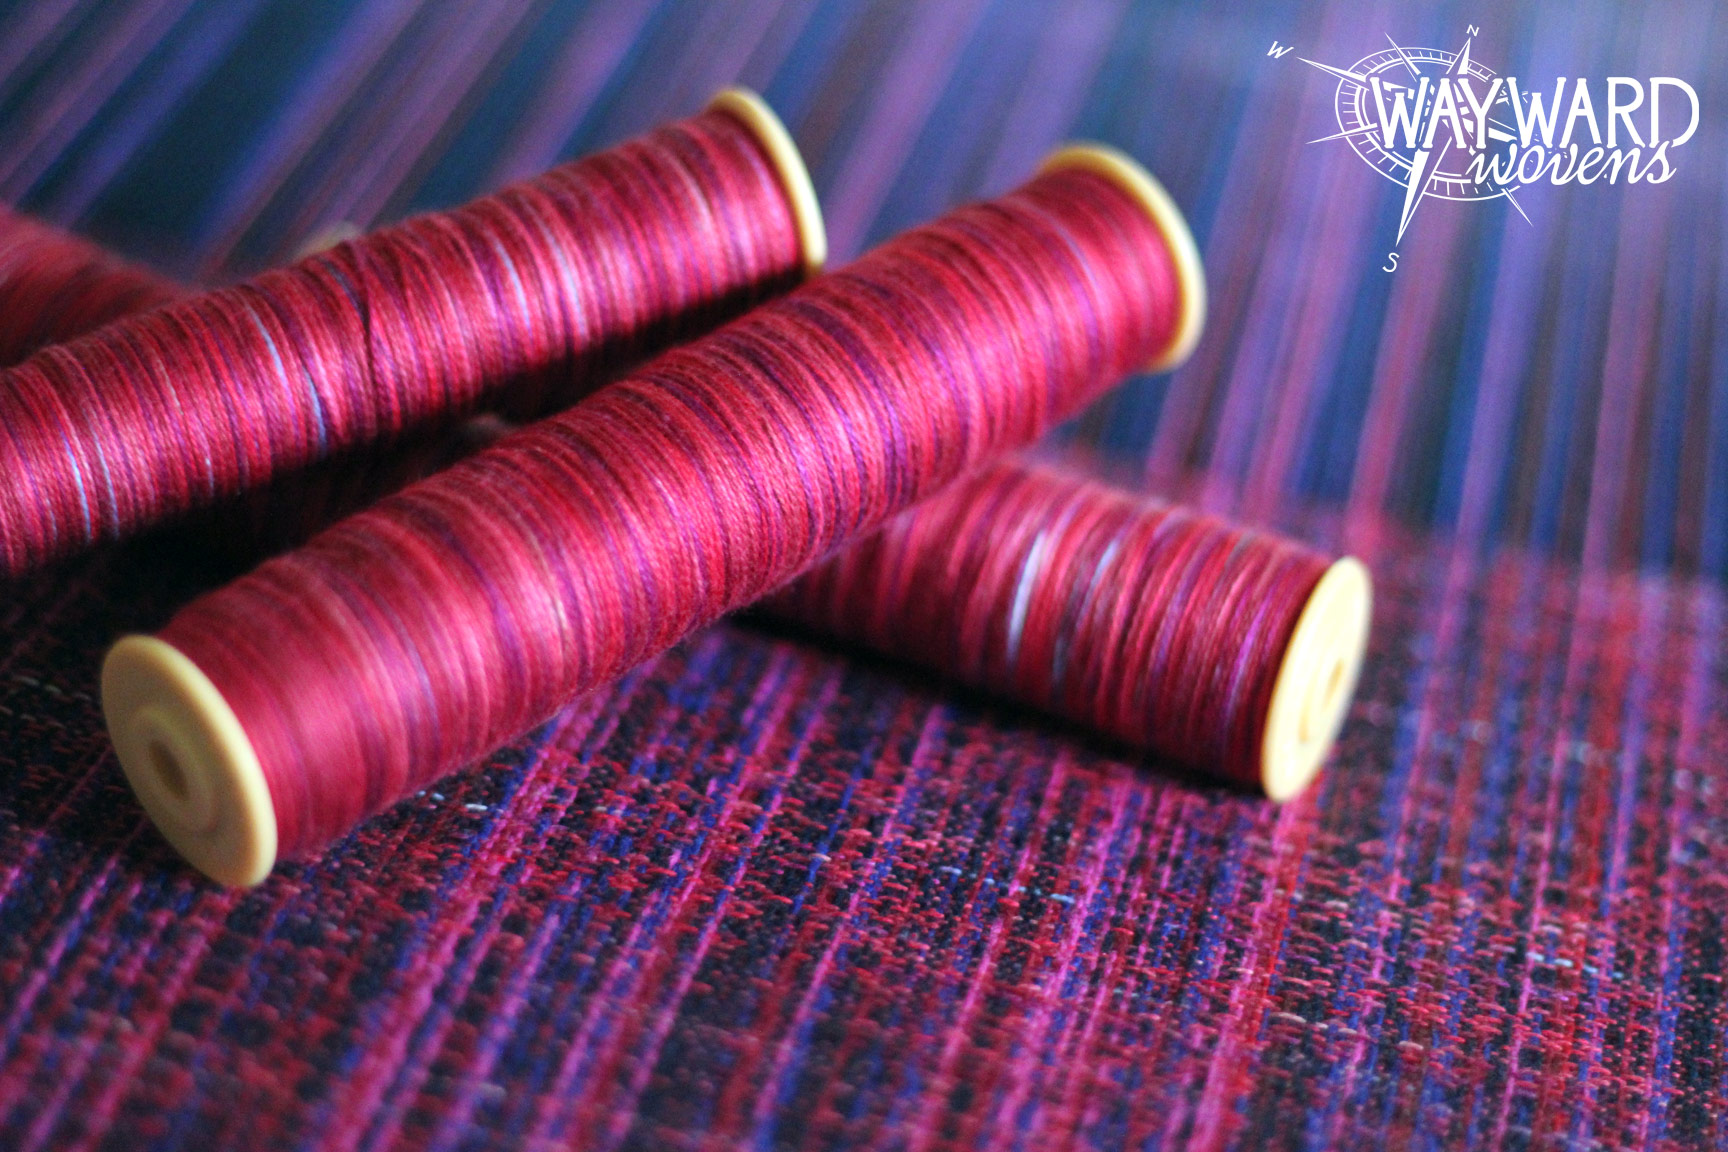 Woven cloth with bobbins